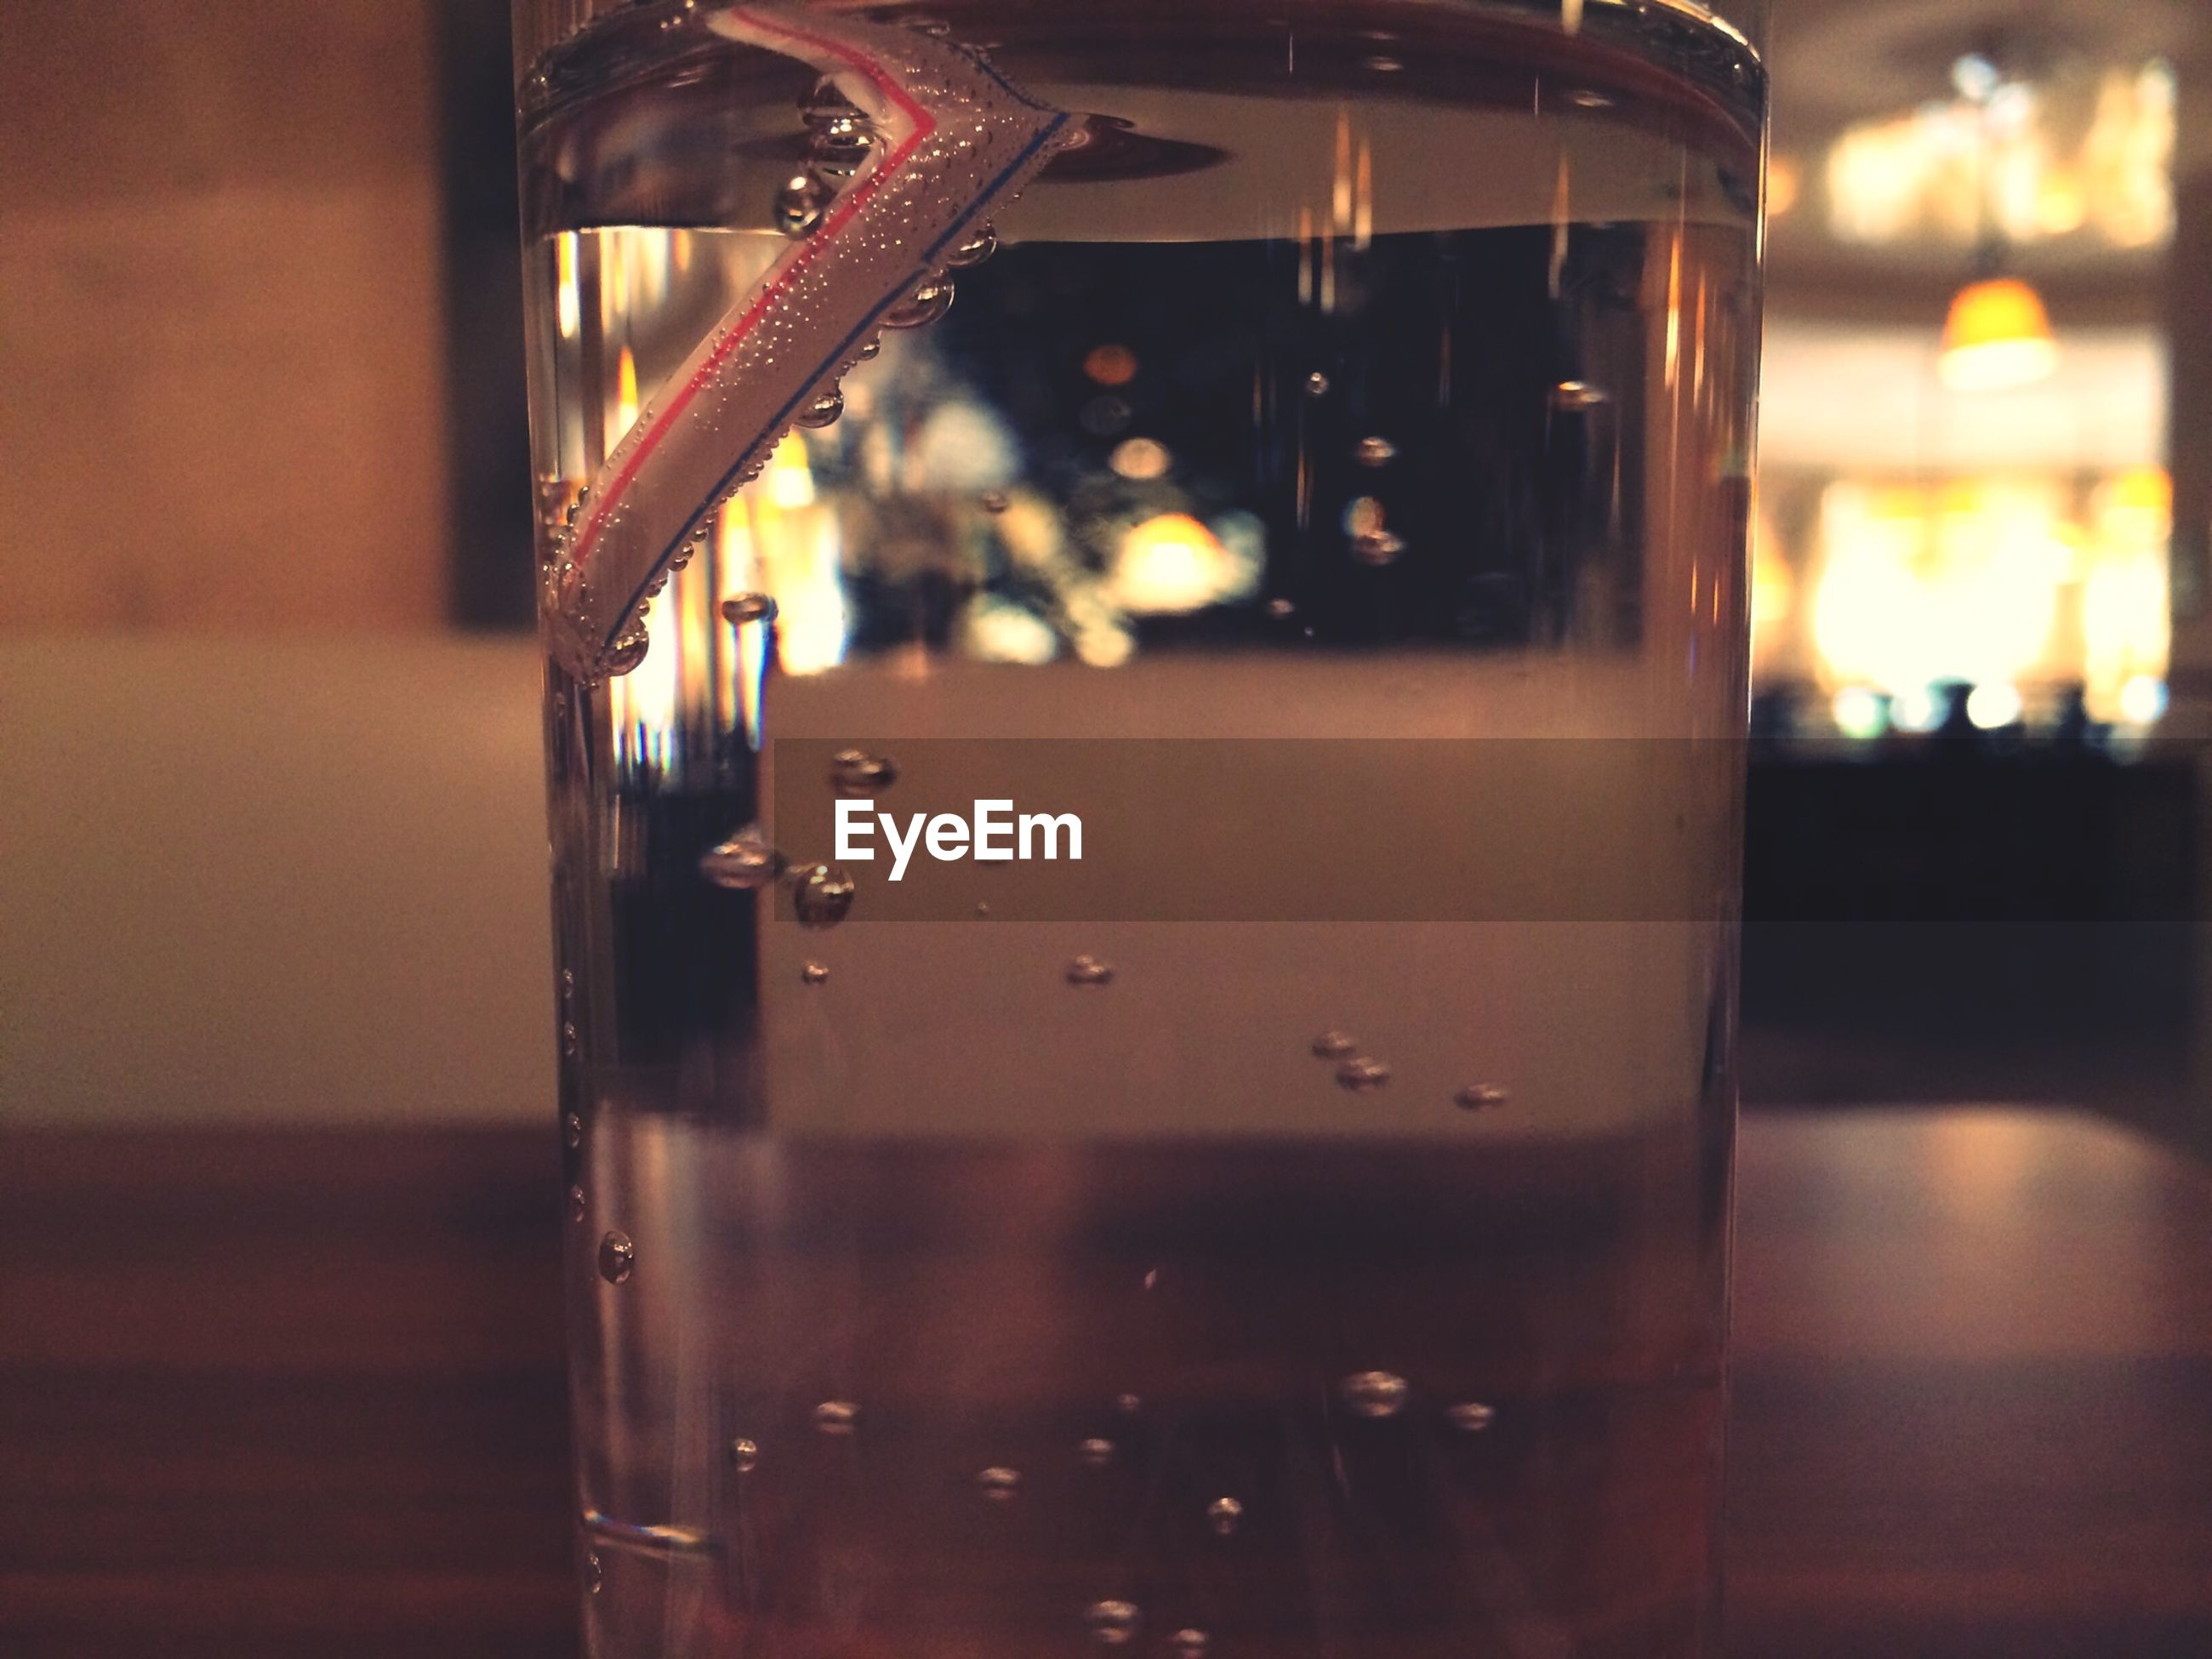 indoors, illuminated, focus on foreground, glass - material, night, transparent, close-up, reflection, no people, selective focus, window, lighting equipment, glass, wet, built structure, water, architecture, table, light - natural phenomenon, drinking glass